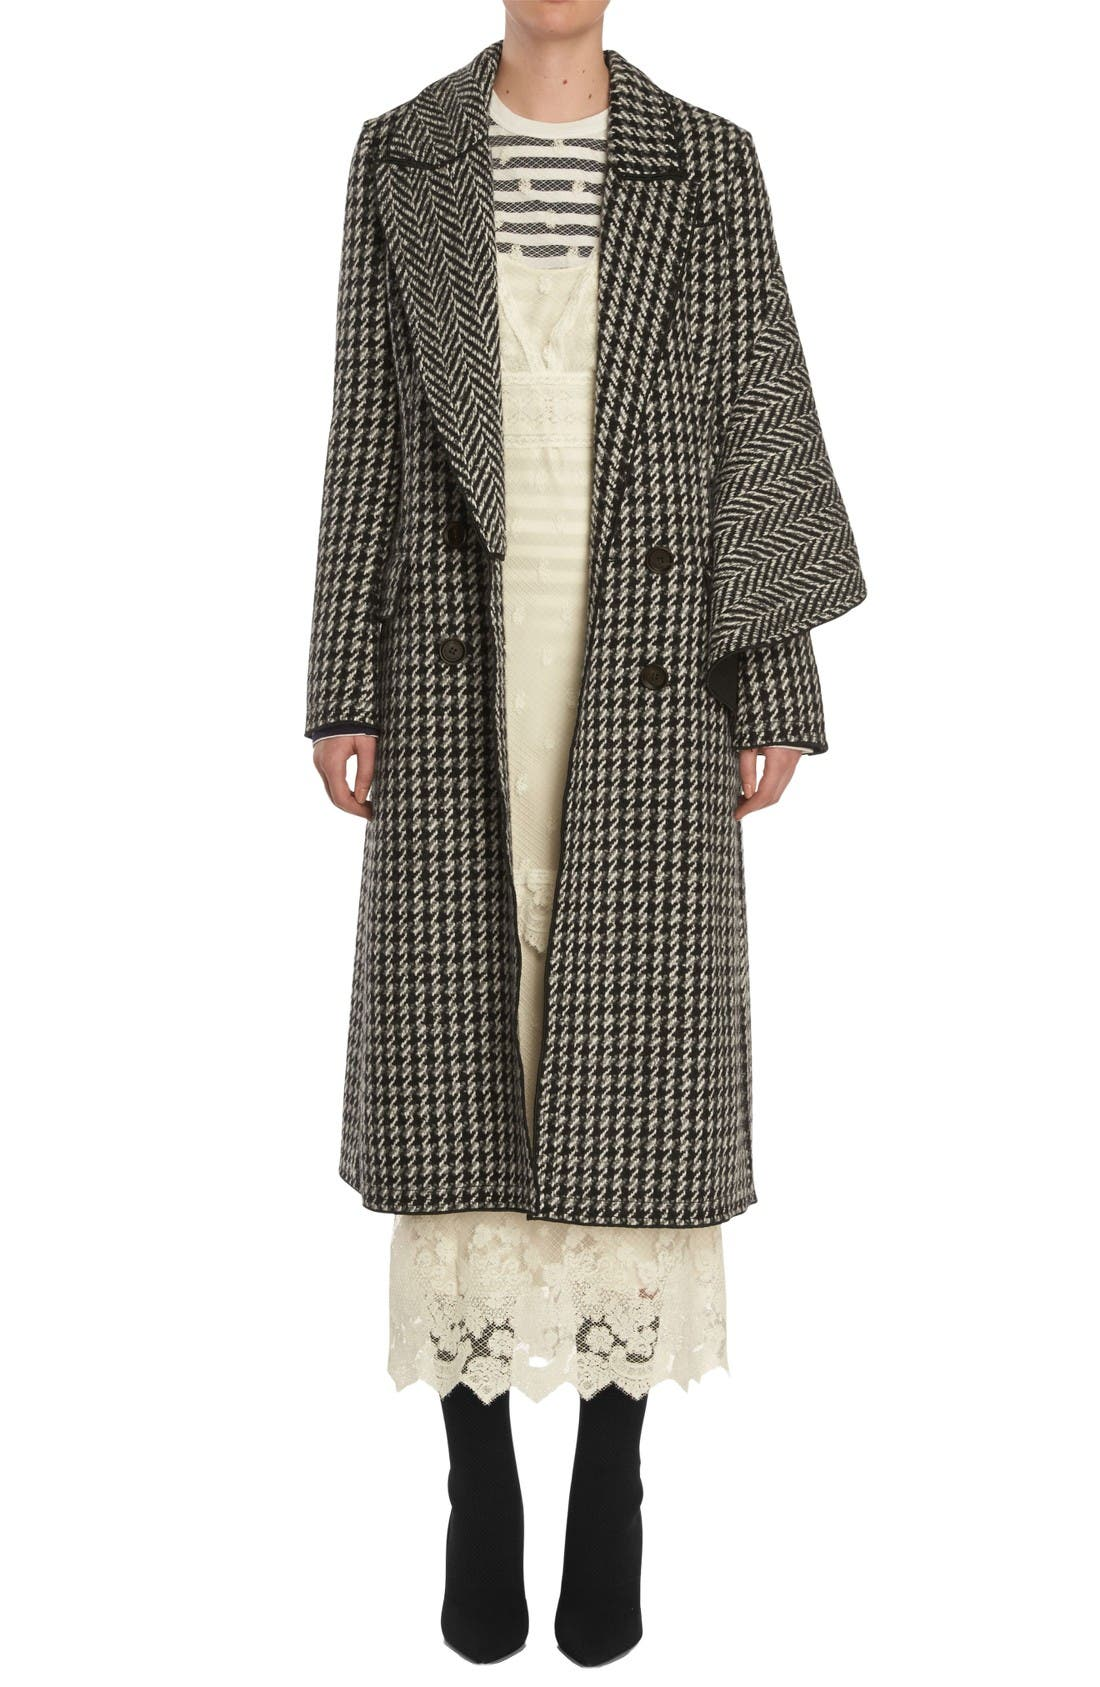 Alternate Image 1 Selected - Burberry Houndstooth Wool Coat